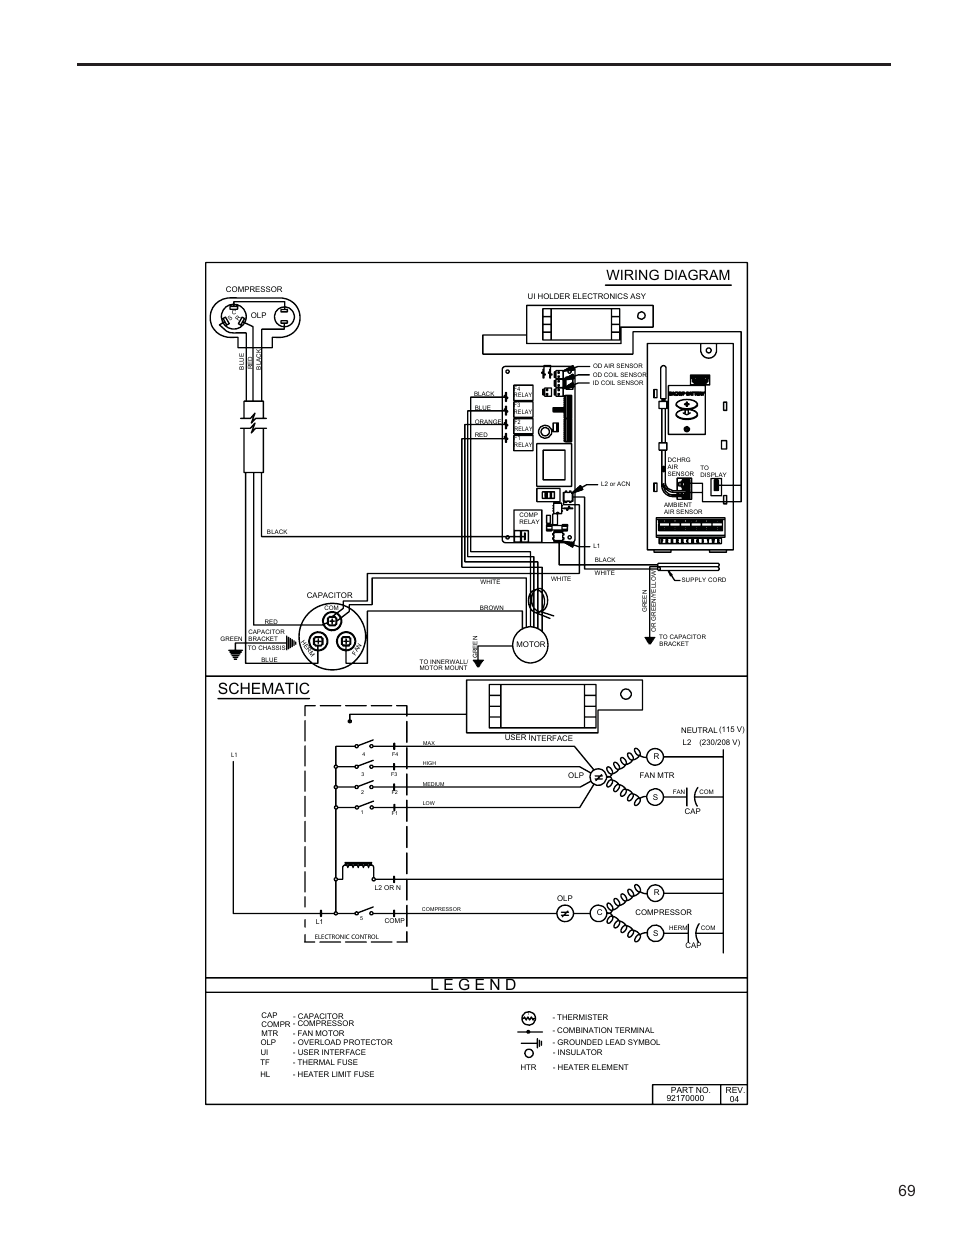 Friedrich Wiring Diagram Schematics M5350 Rheem Schematic Kuhl R 410a User Manual Page Heat Pump